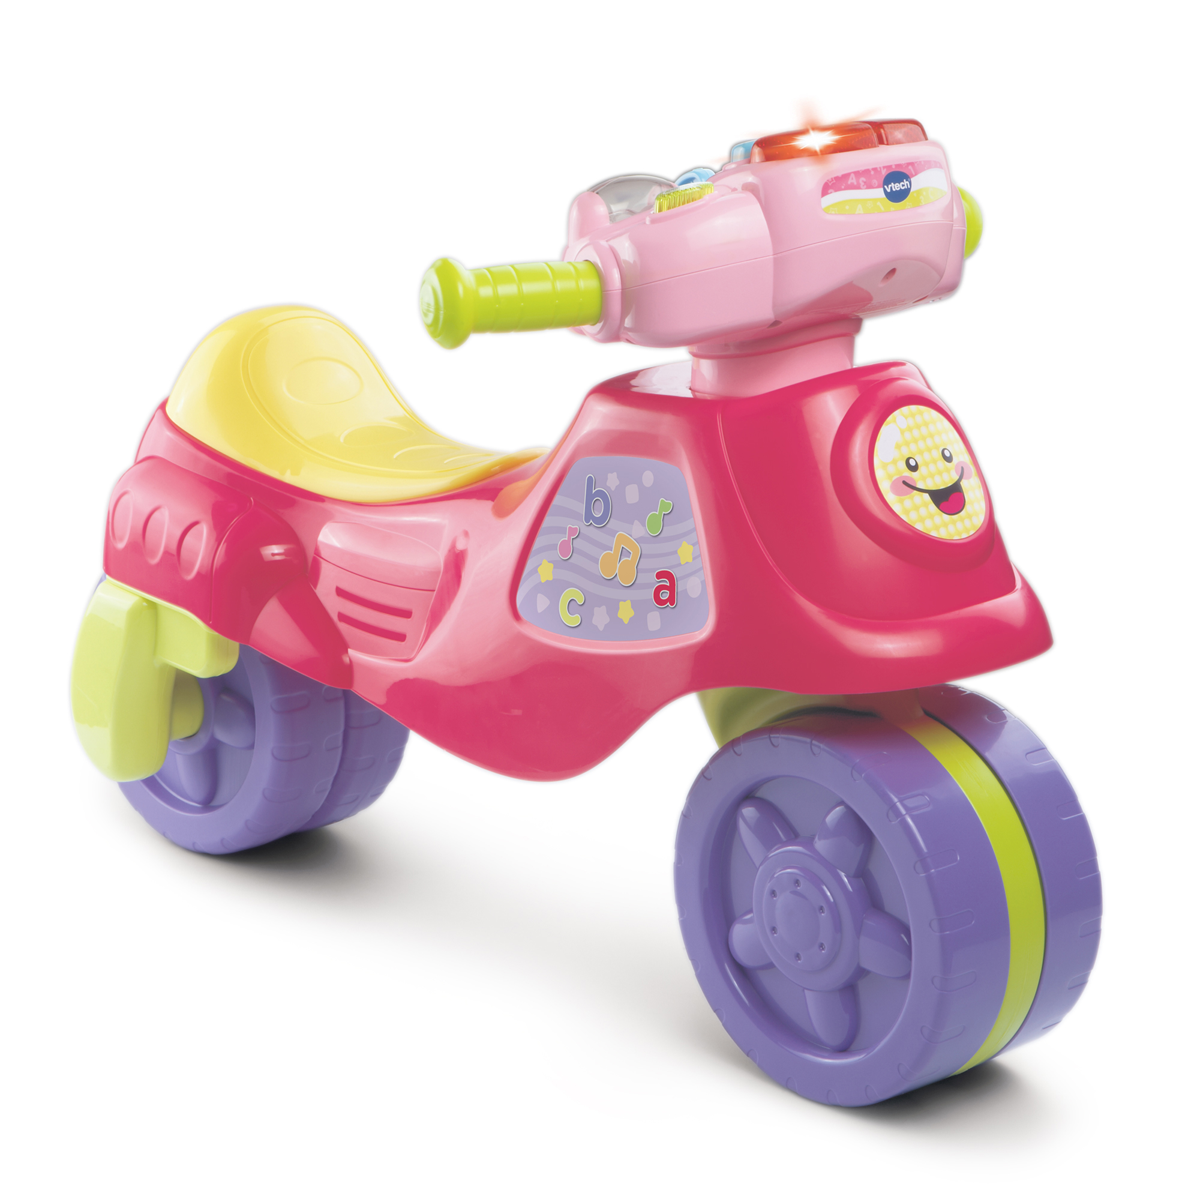 VTech Baby 2-in-1 Tri to Bike from Early Learning Center